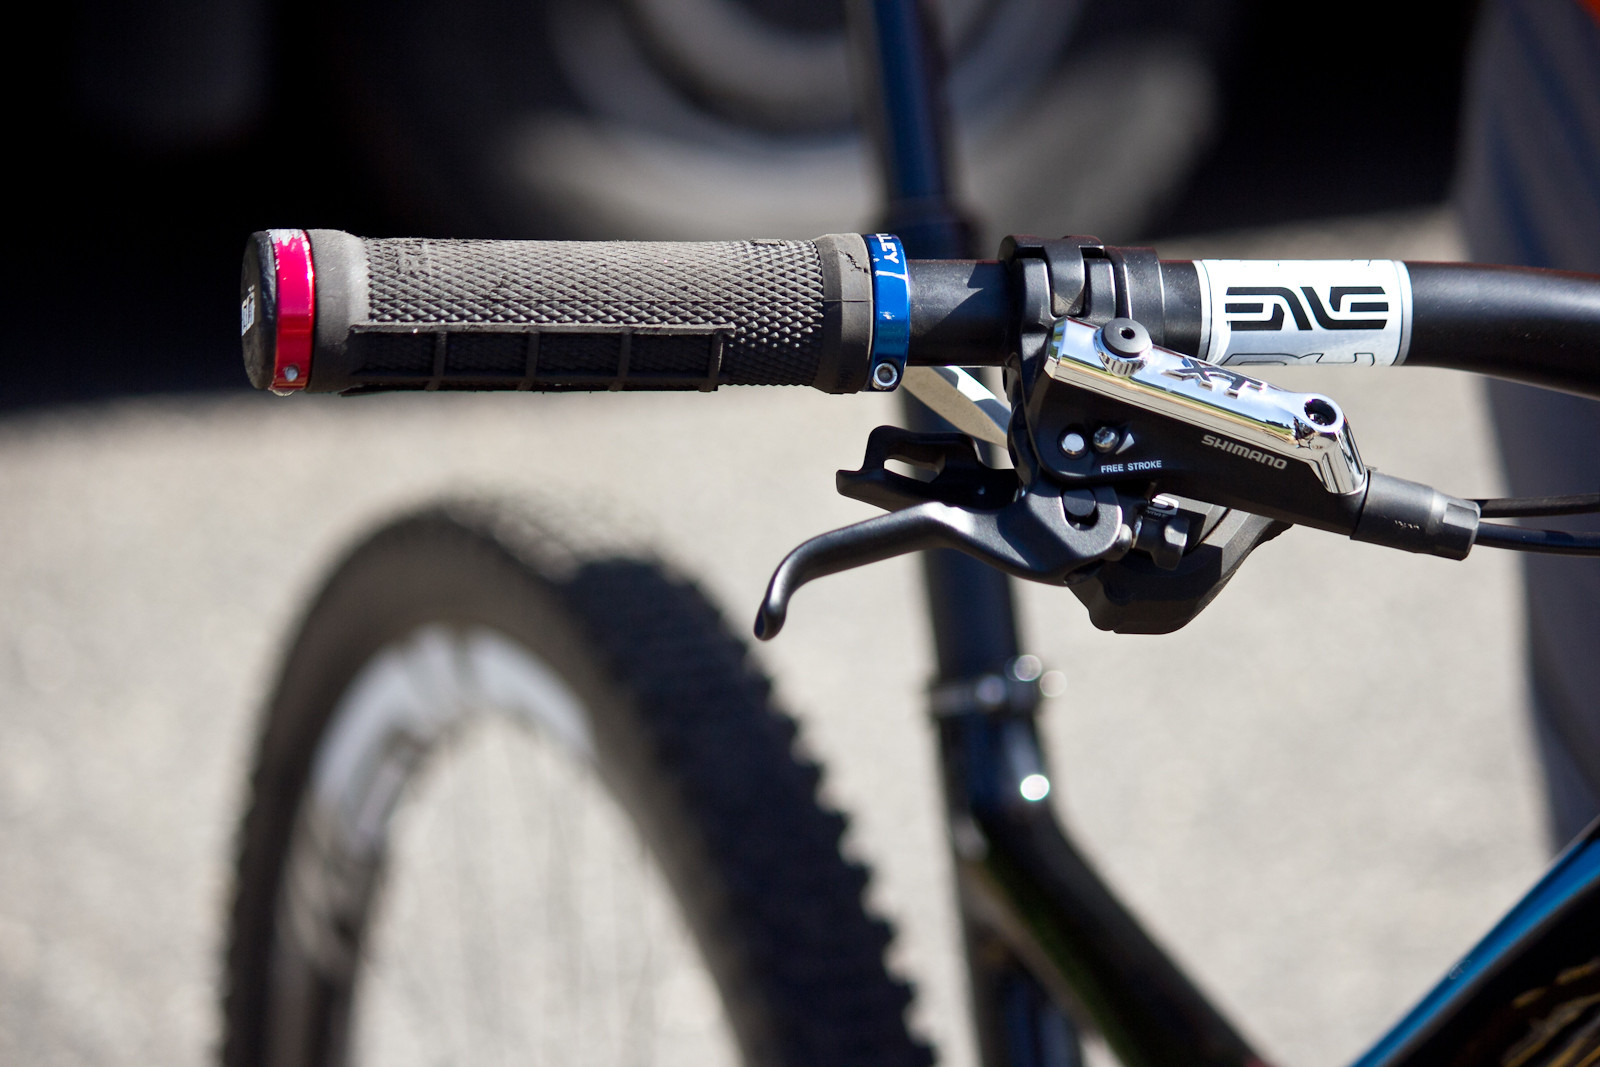 ODI Grips, ENVE Carbon Bars and Shimano XT Disc Brakes - Pro Bike Check: Cody Kelley's Specialized Stumpjumper FSR EVO 29 - Mountain Biking Pictures - Vital MTB